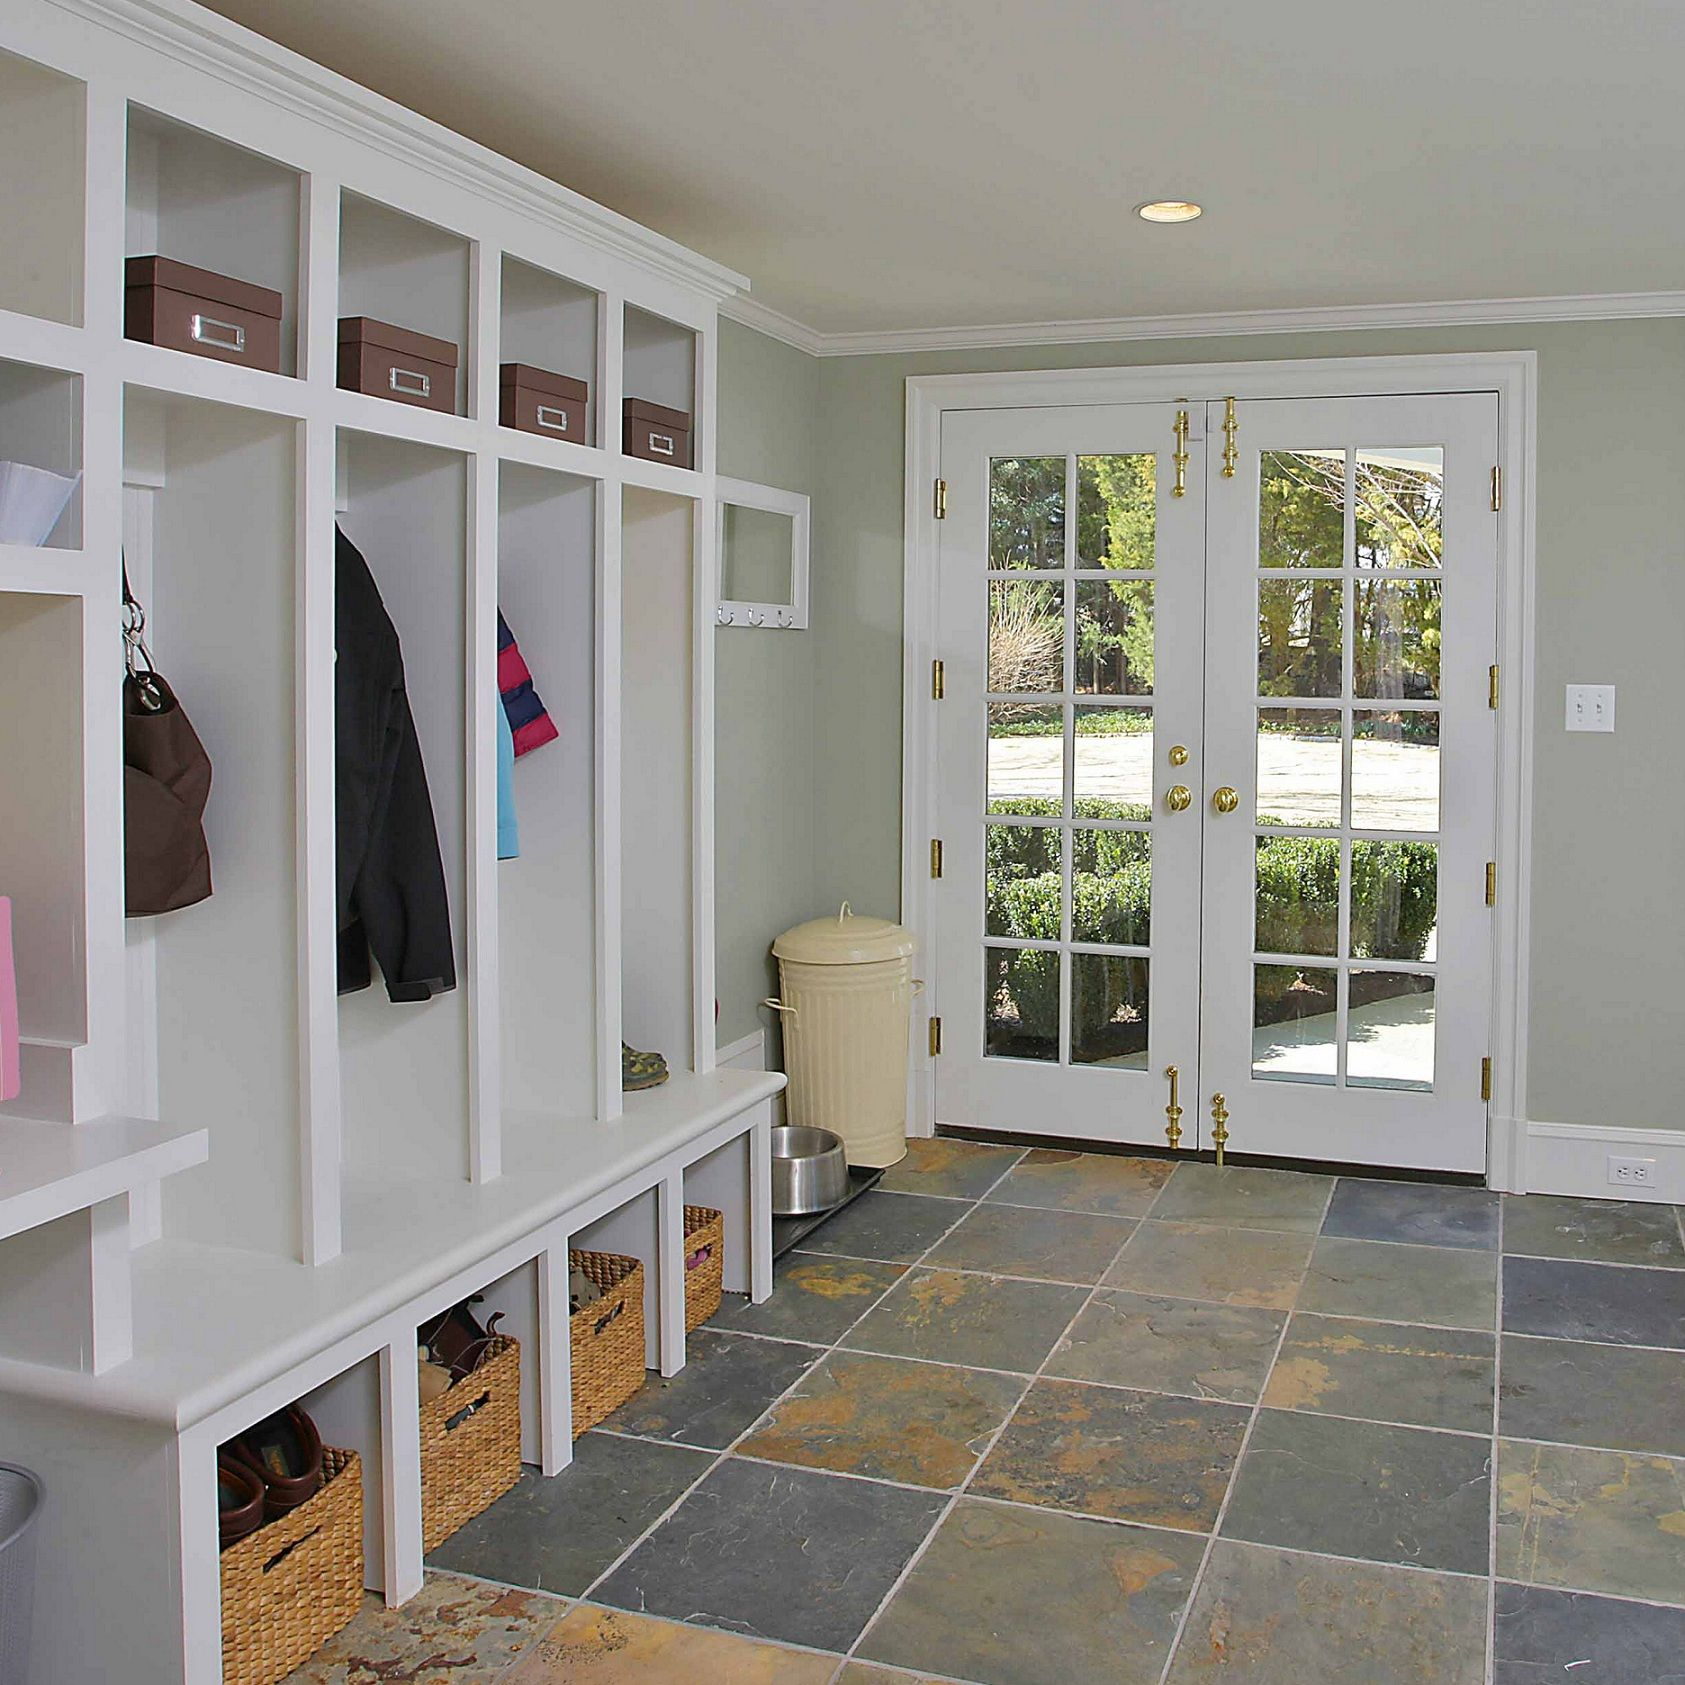 mudroom design ideas mudroom storage ideas decorating and design ideas for interior rooms hgtv 17 design inspirations for mudrooms and entryways mudroom - Mudroom Design Ideas